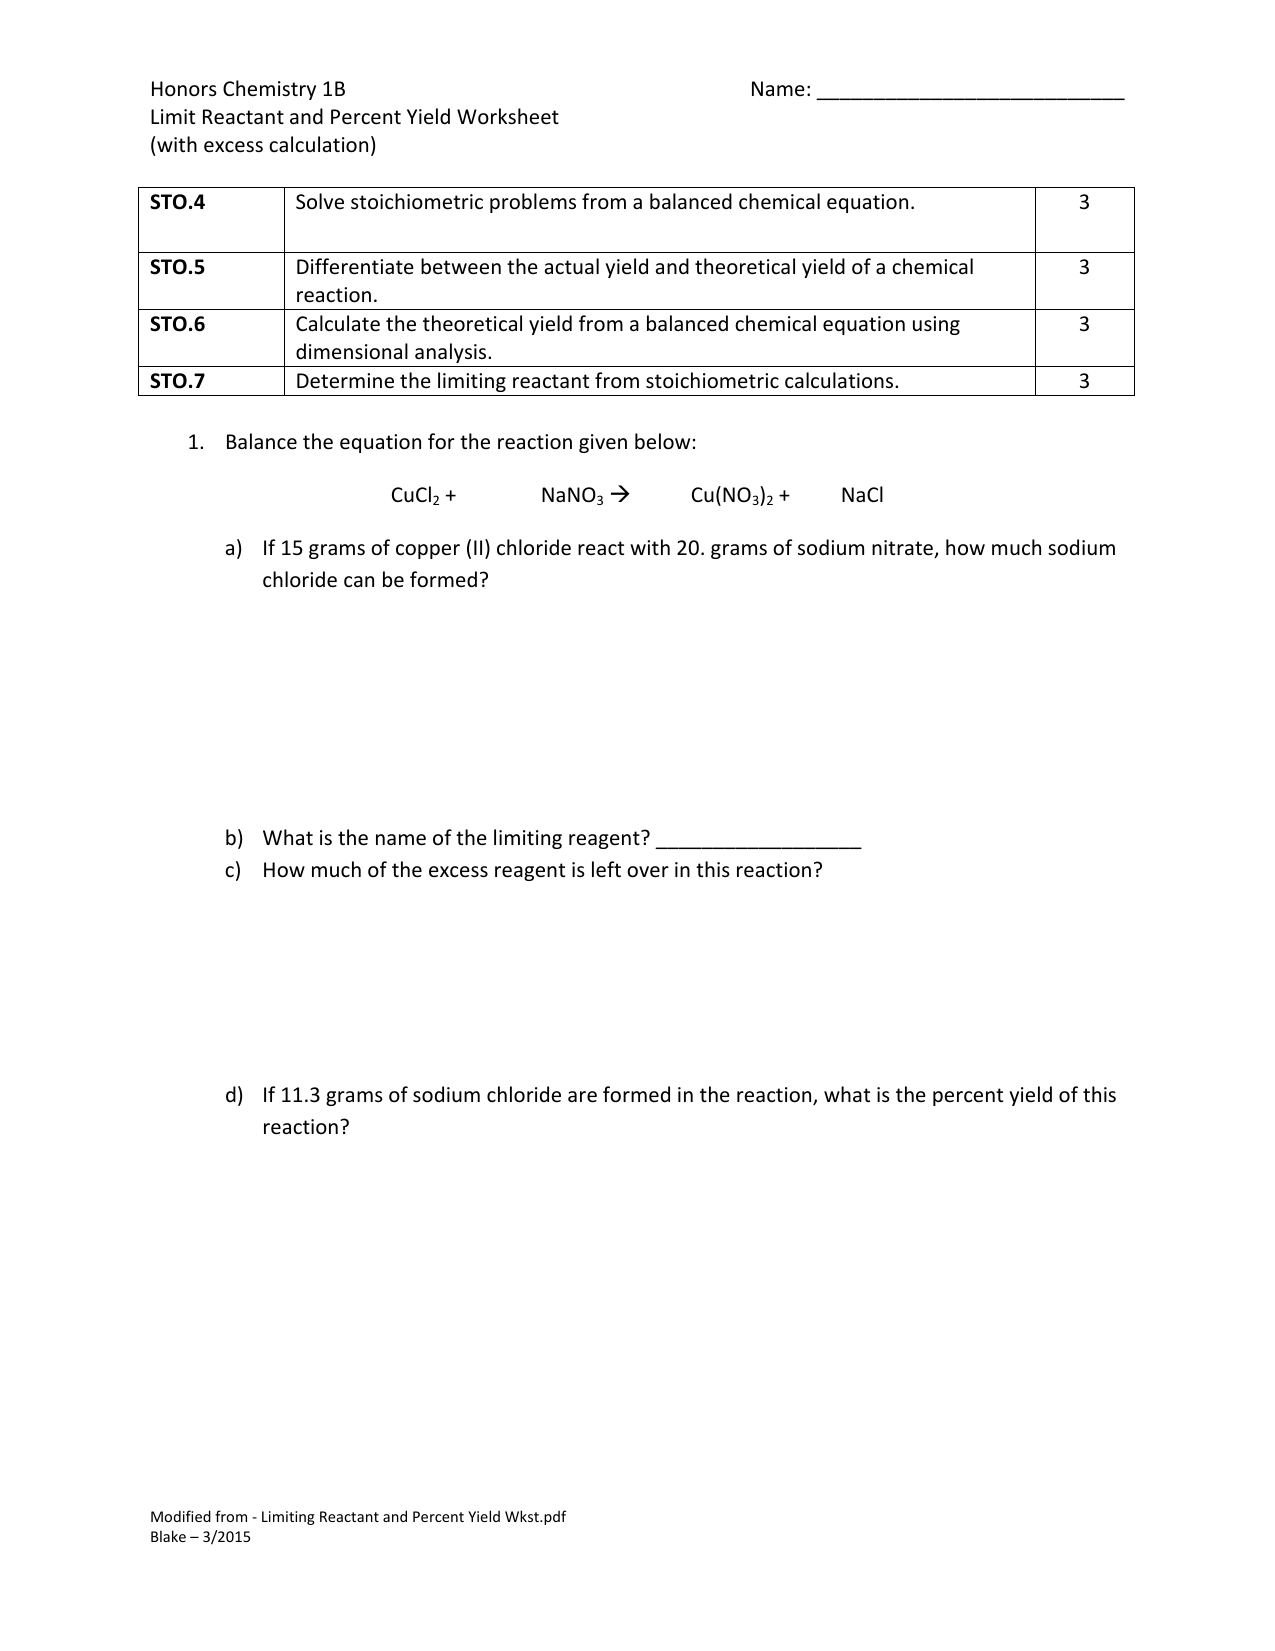 Limiting Reactant And Percent Yield Worksheet With Key